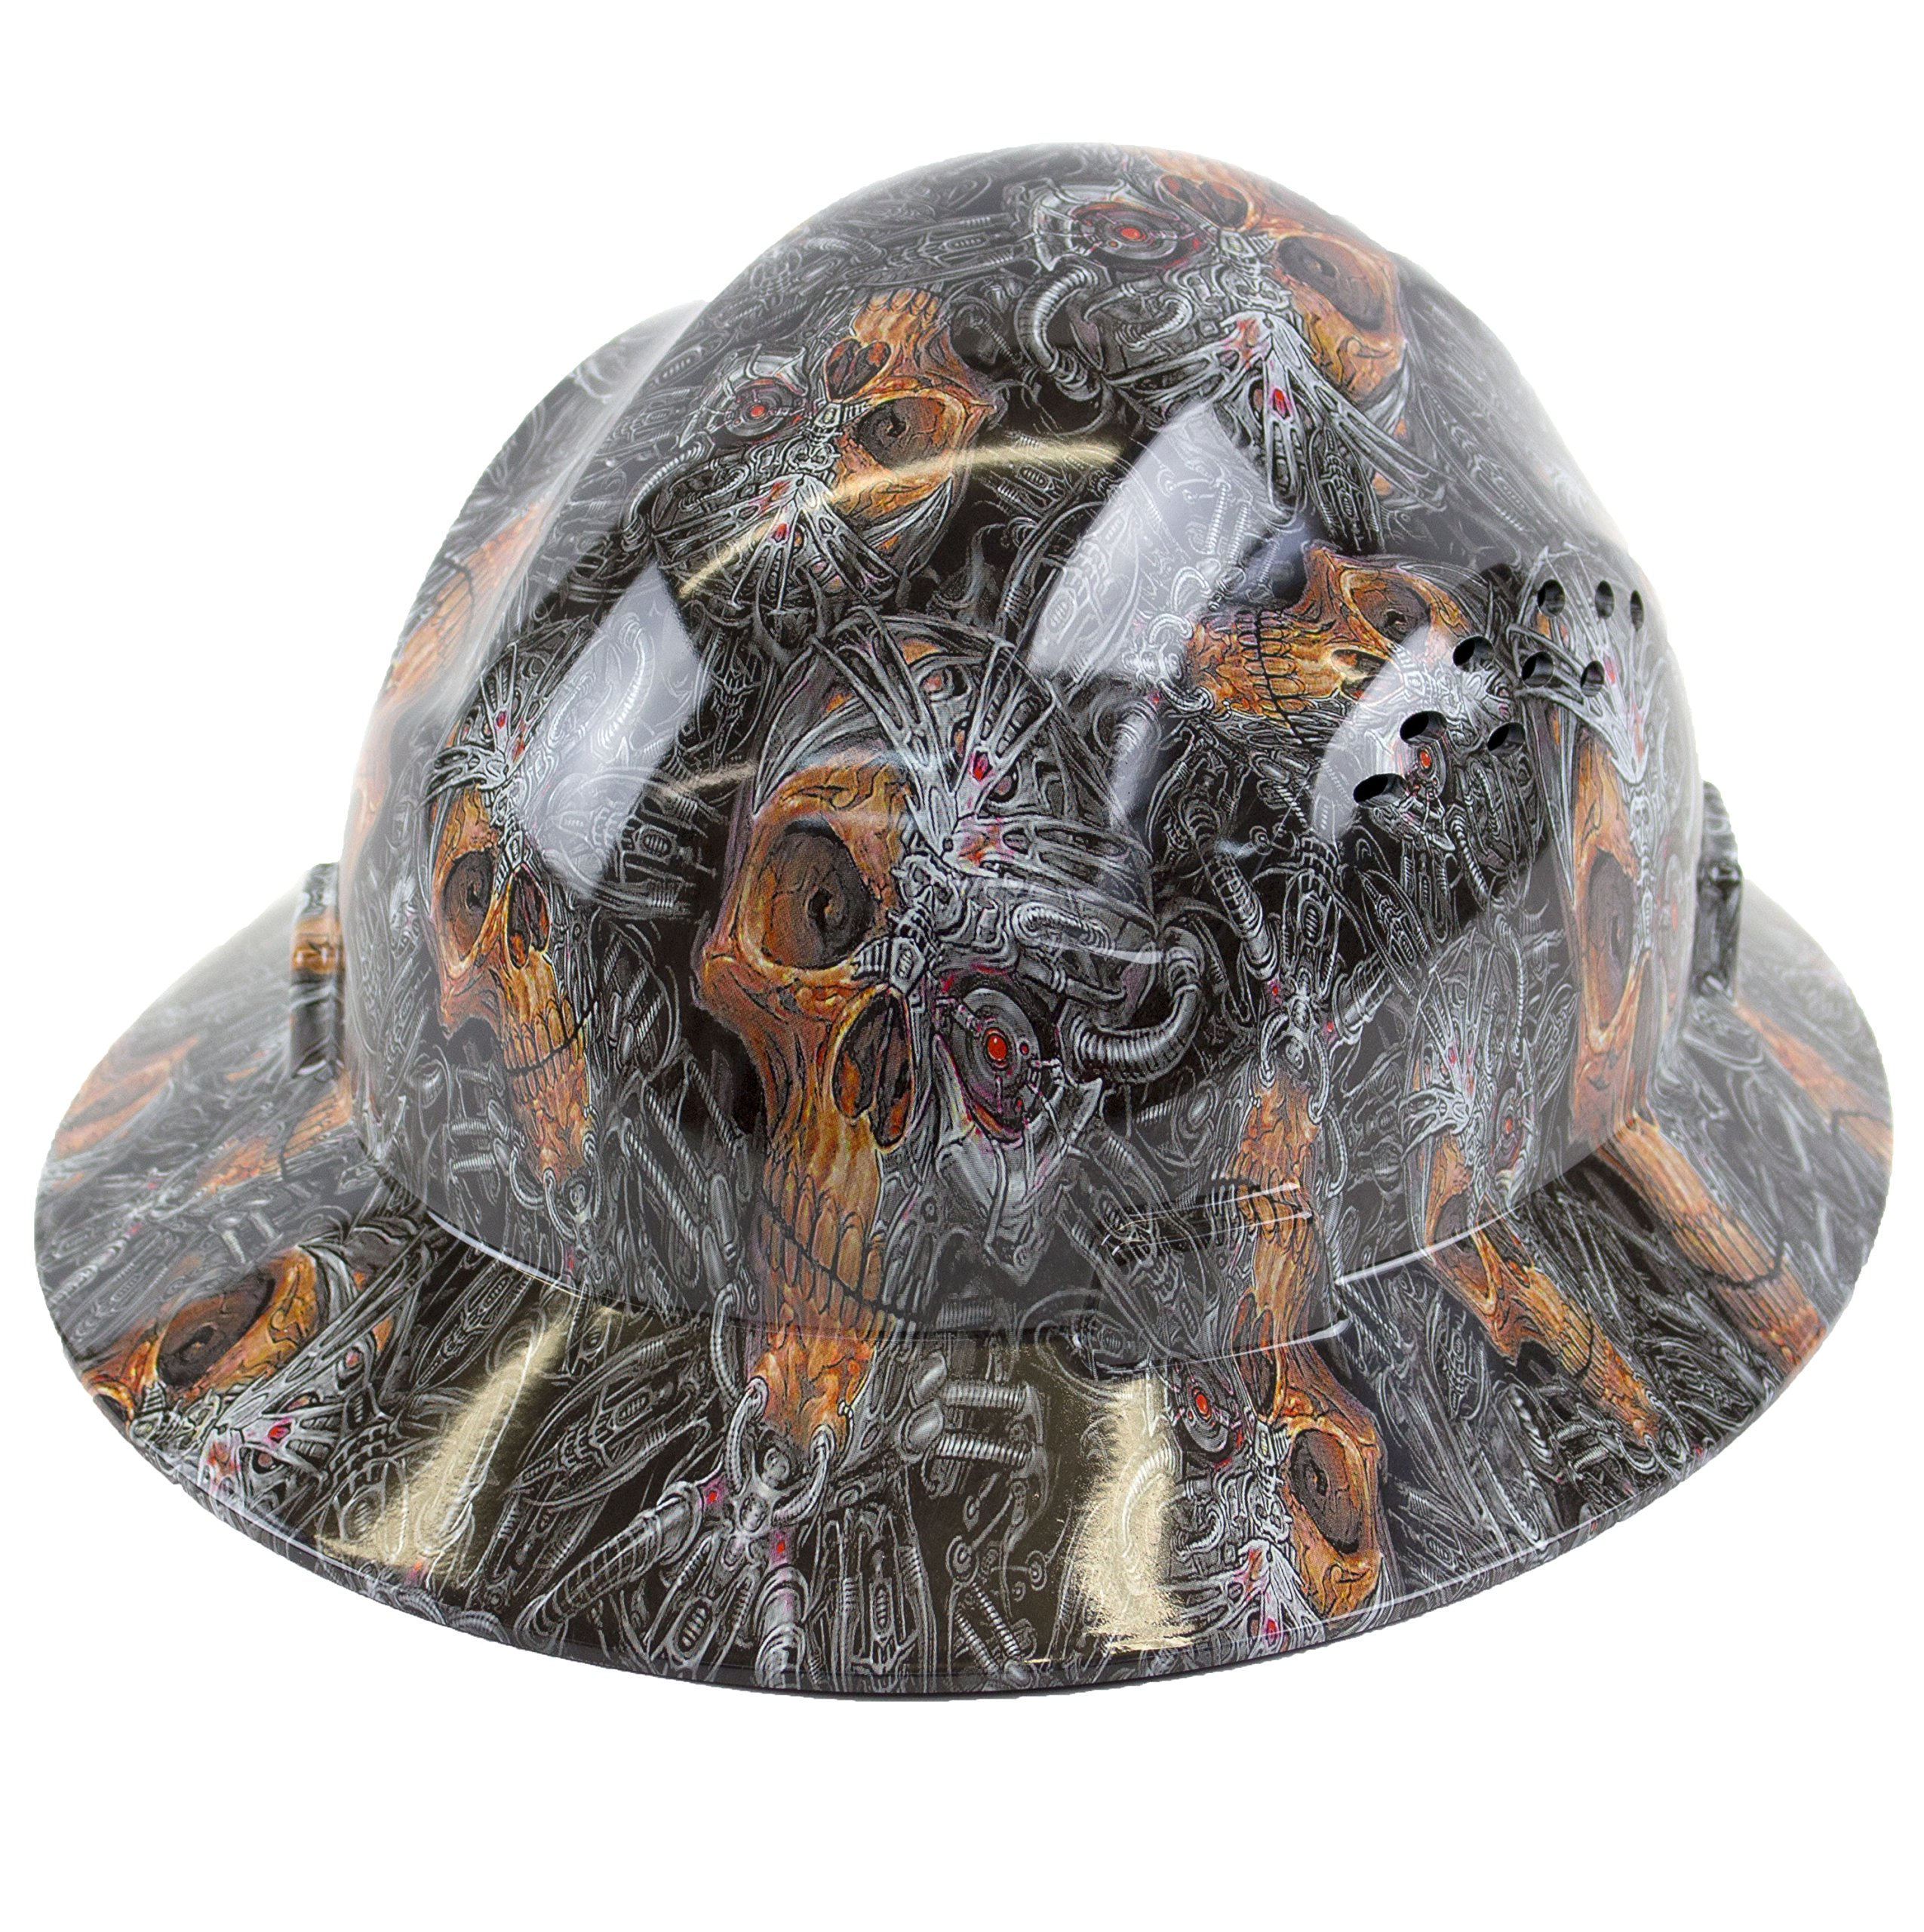 RK Safety RK-HP44-SKULL Hard Hat Brim Style with 4 Point Ratchet Suspension, 1EA (Skull) by RK